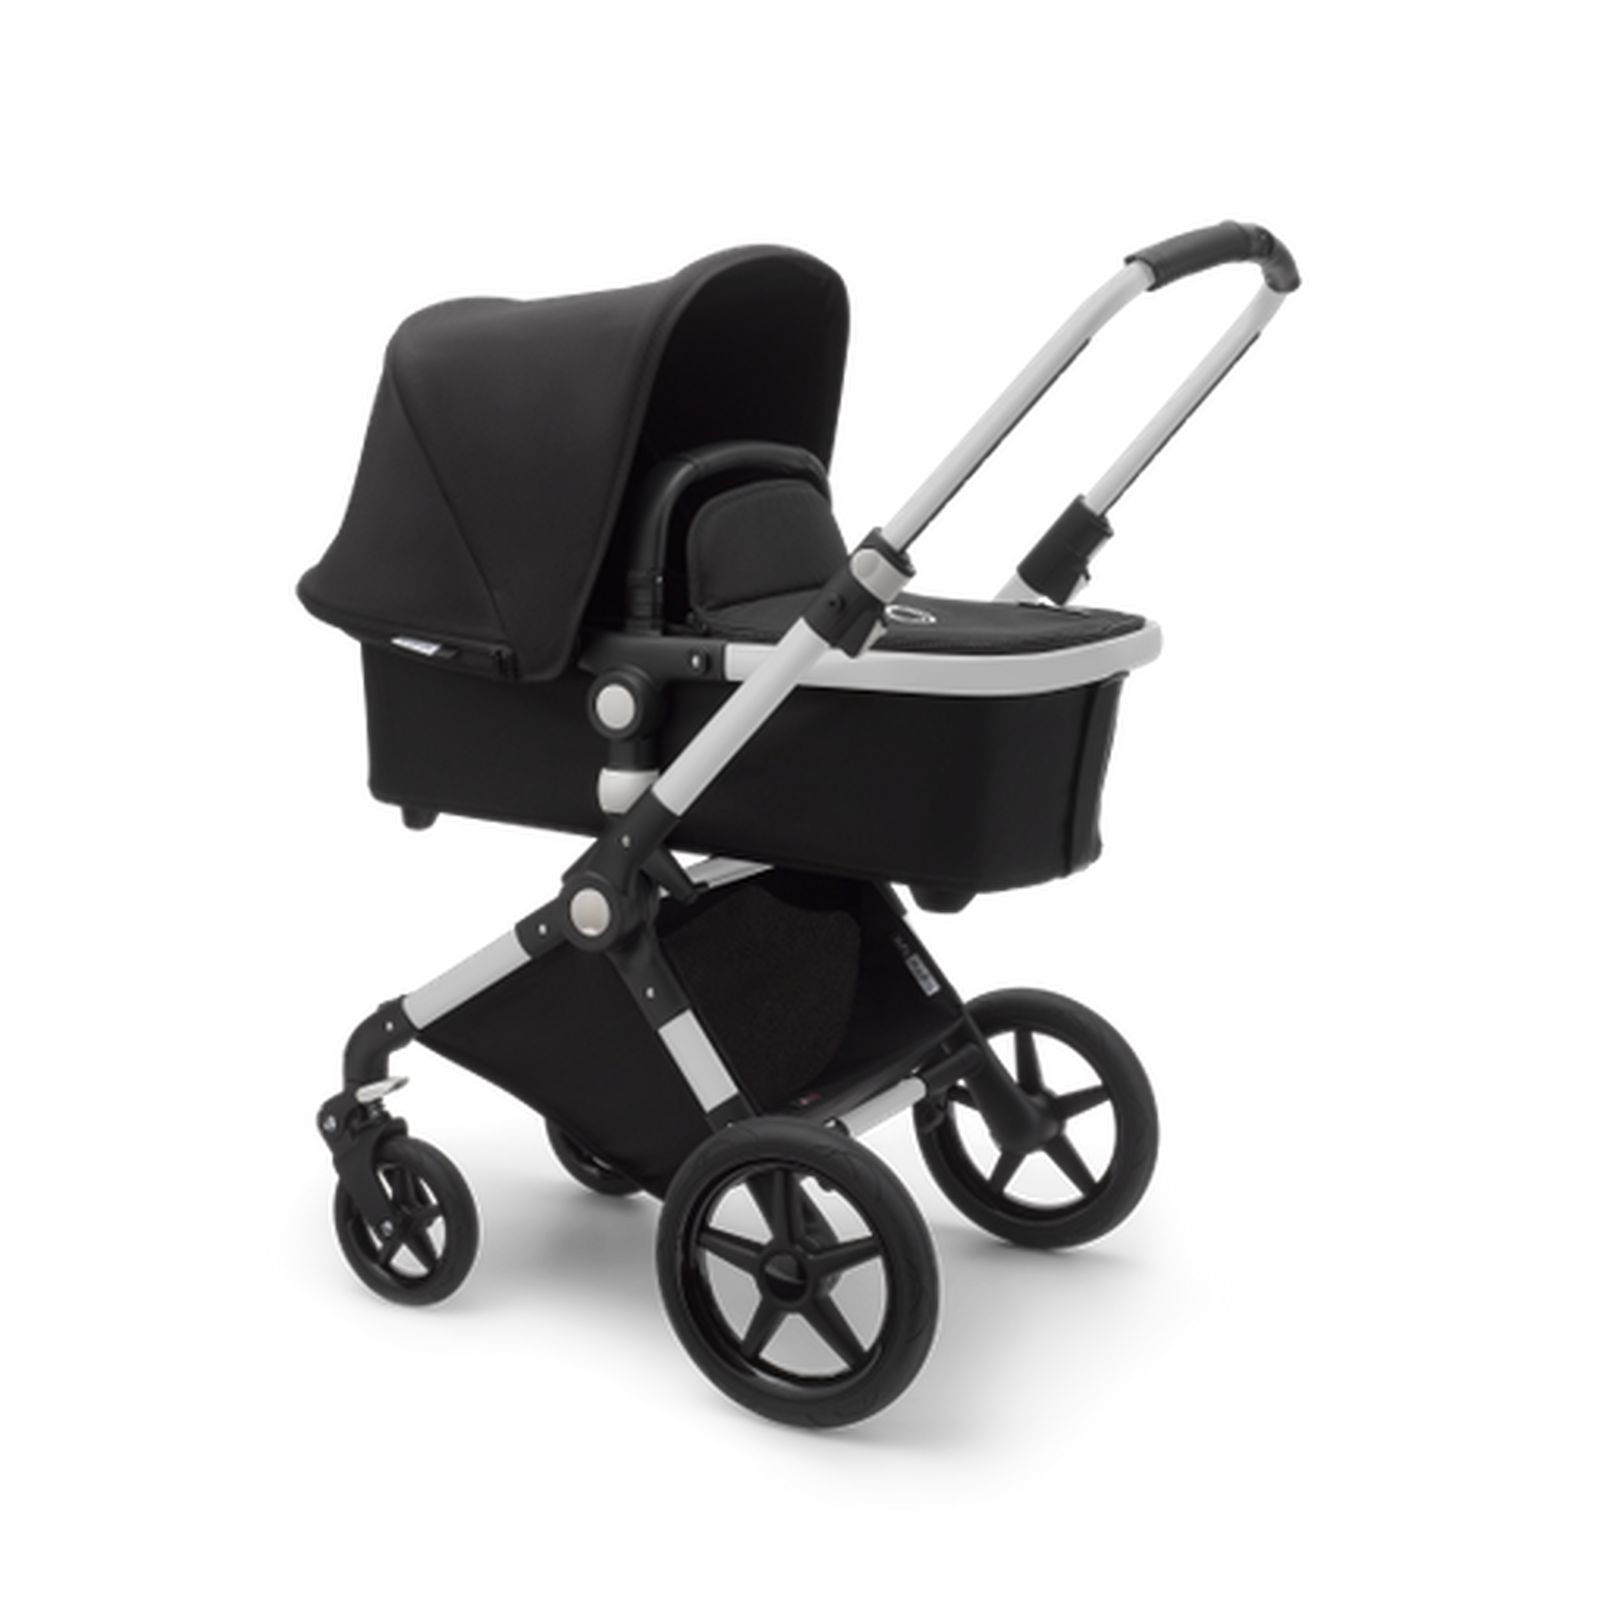 Bugaboo Lynx seat and bassinet Pram